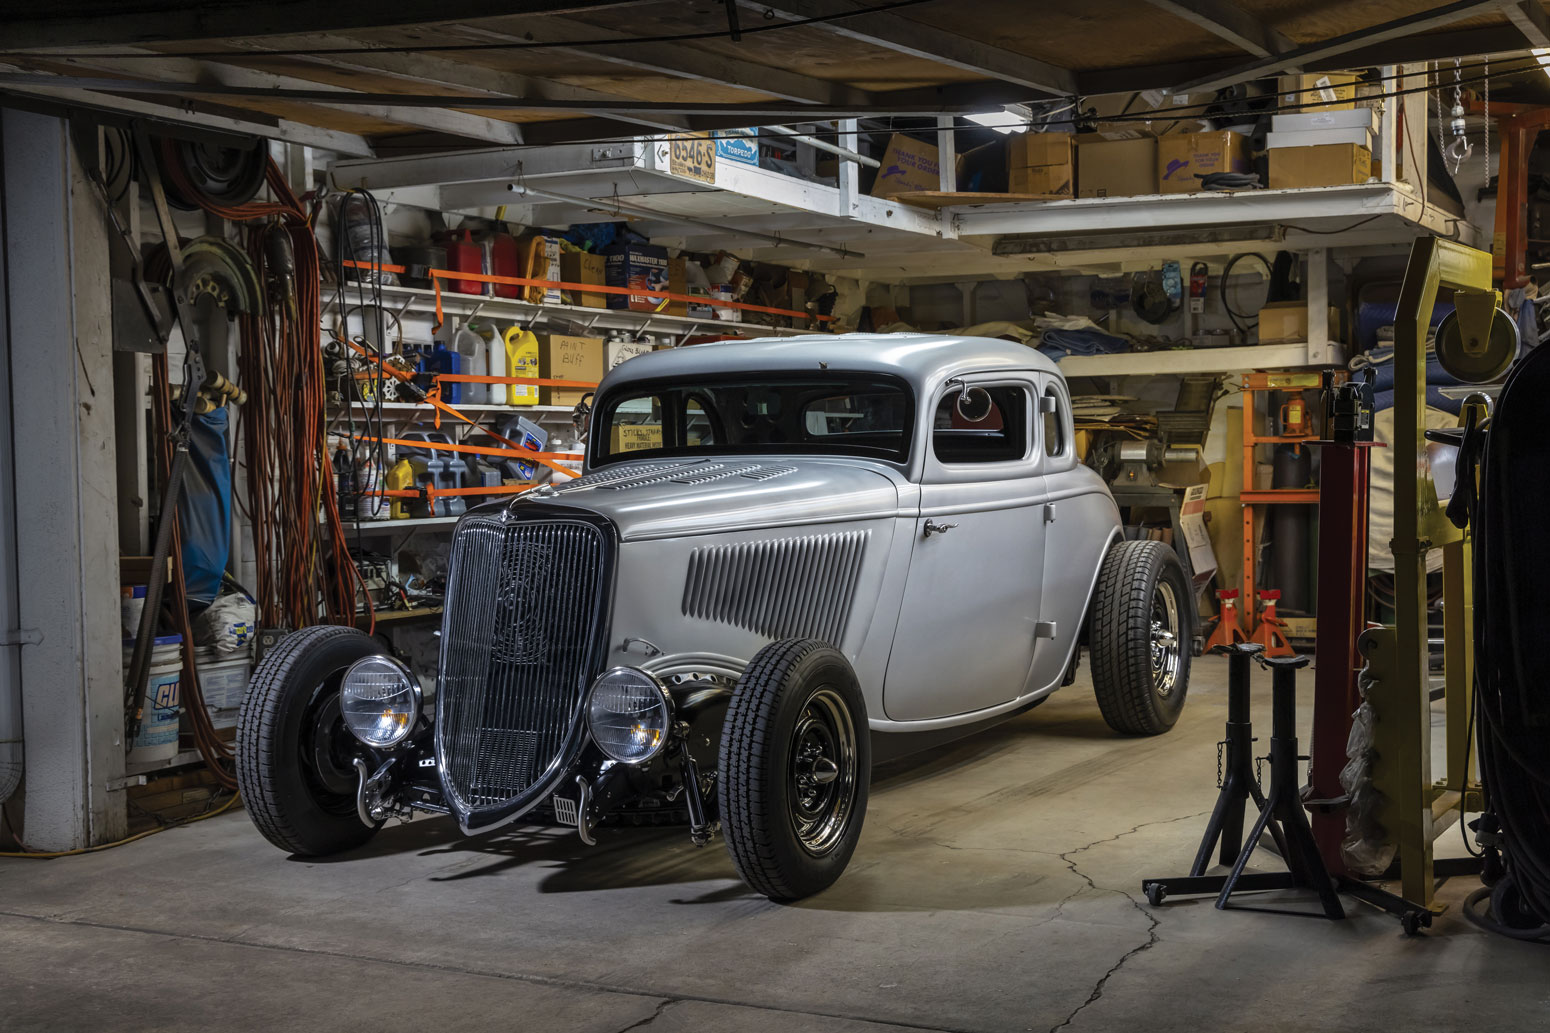 05 1934 ford highboy fabricated and pieced together from 27 different cars making it quite unique